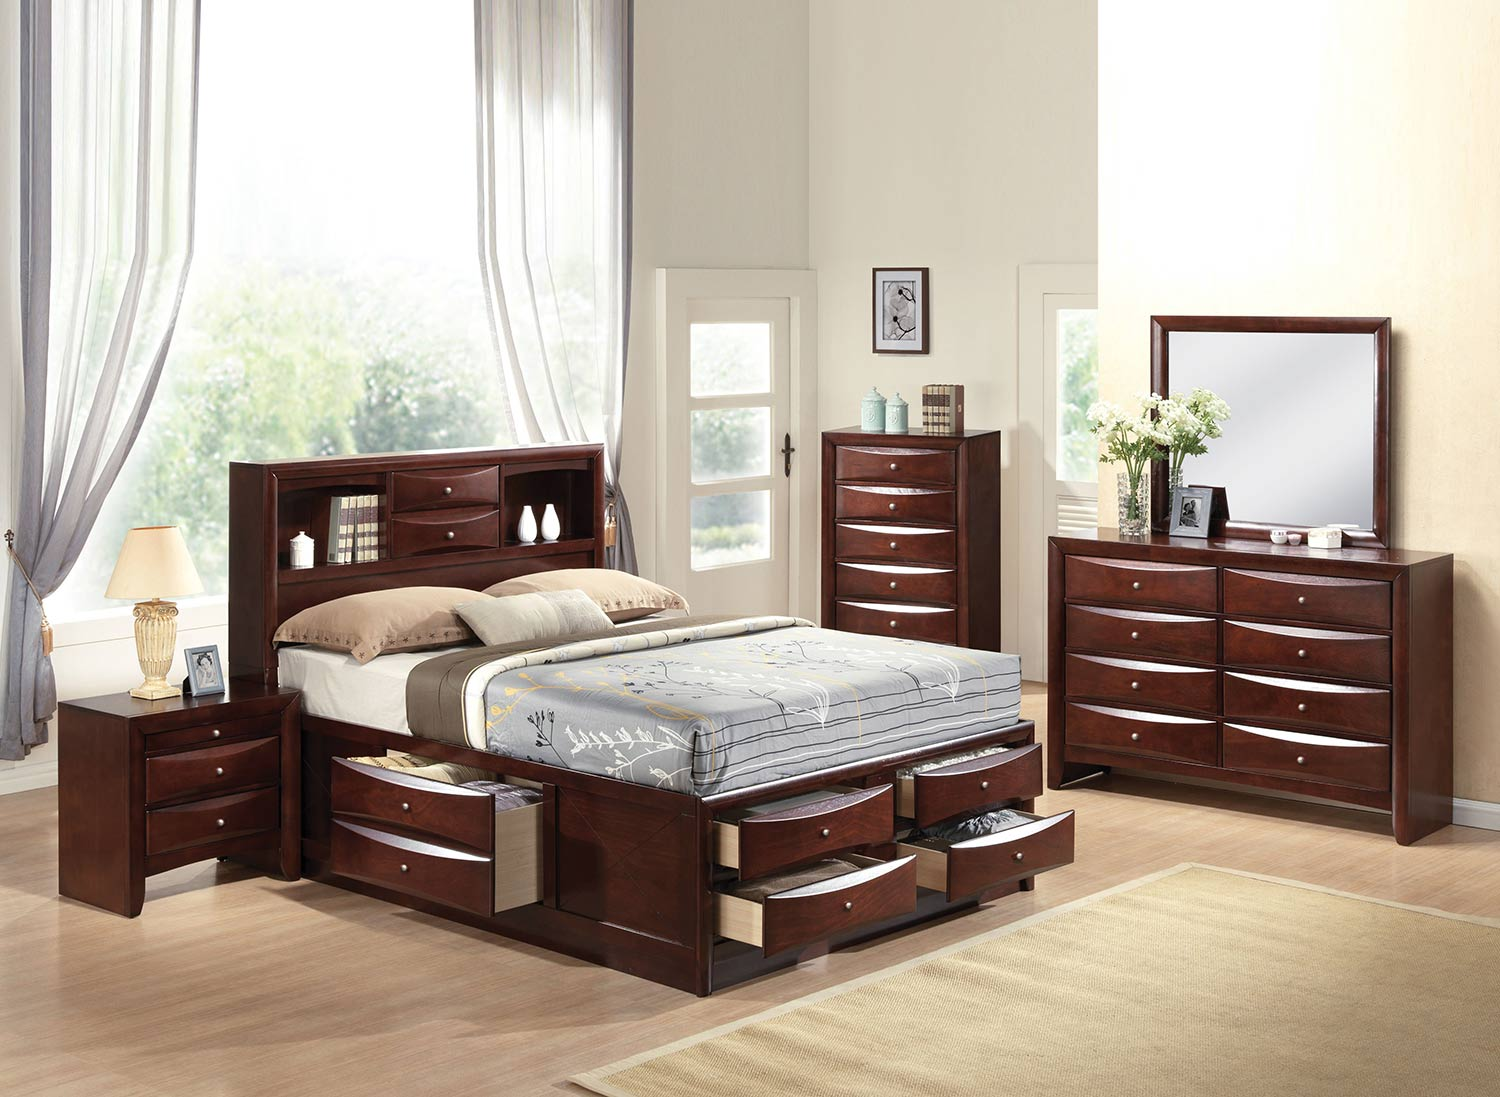 Acme Ireland Bedroom Set with Storage - Espresso